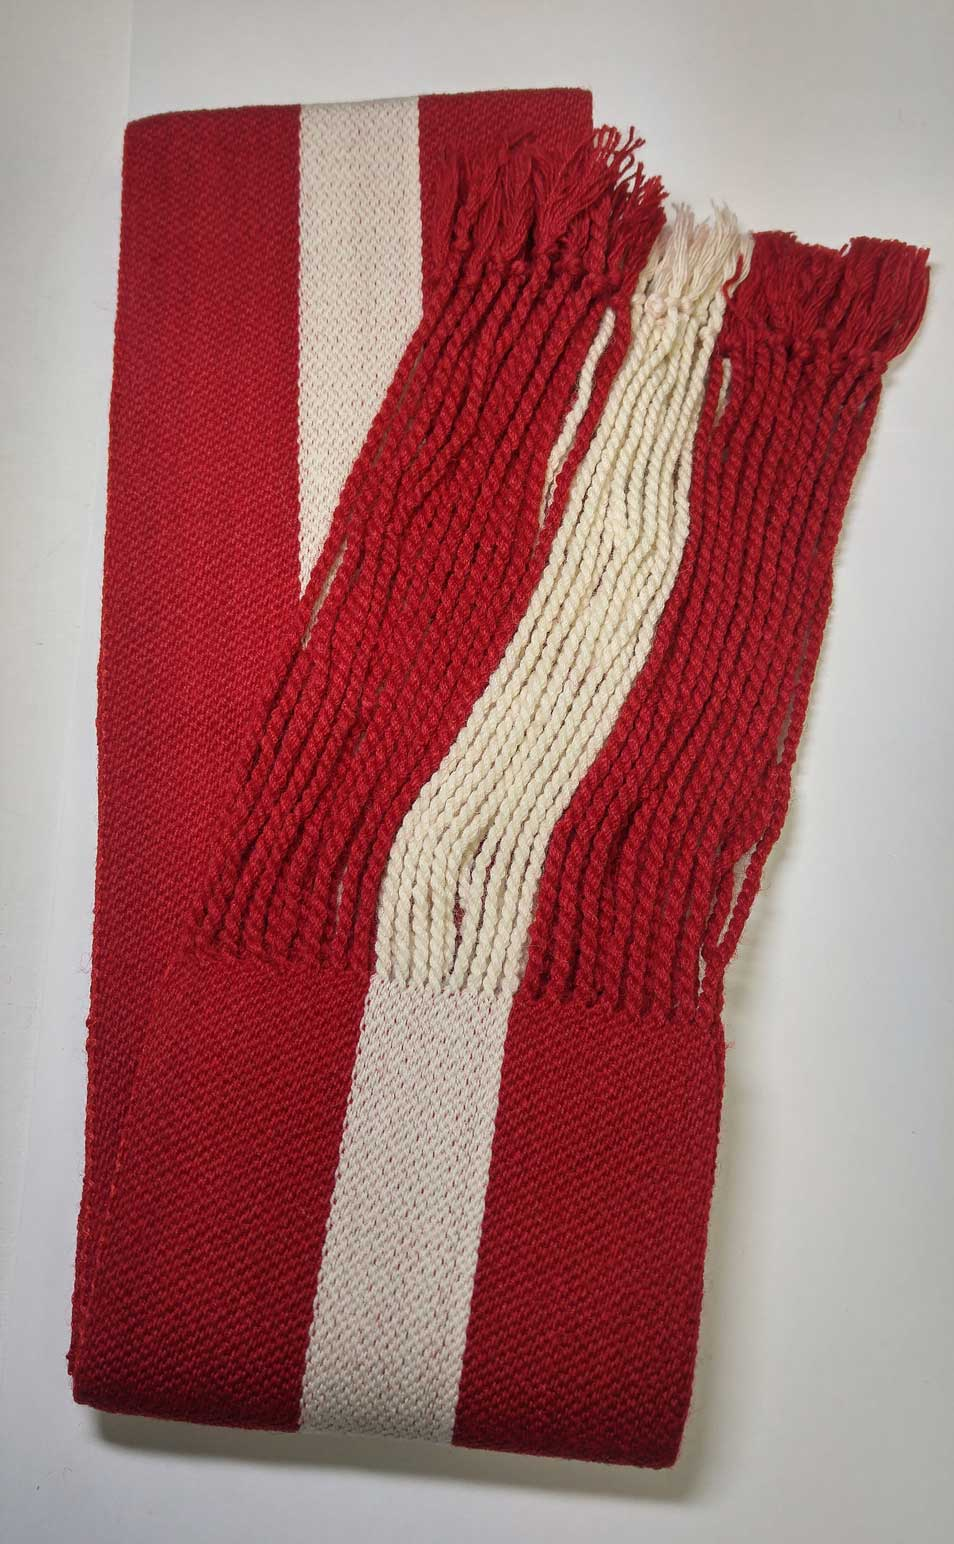 Sash: Sgt., Red with White Stripe, 18/19C